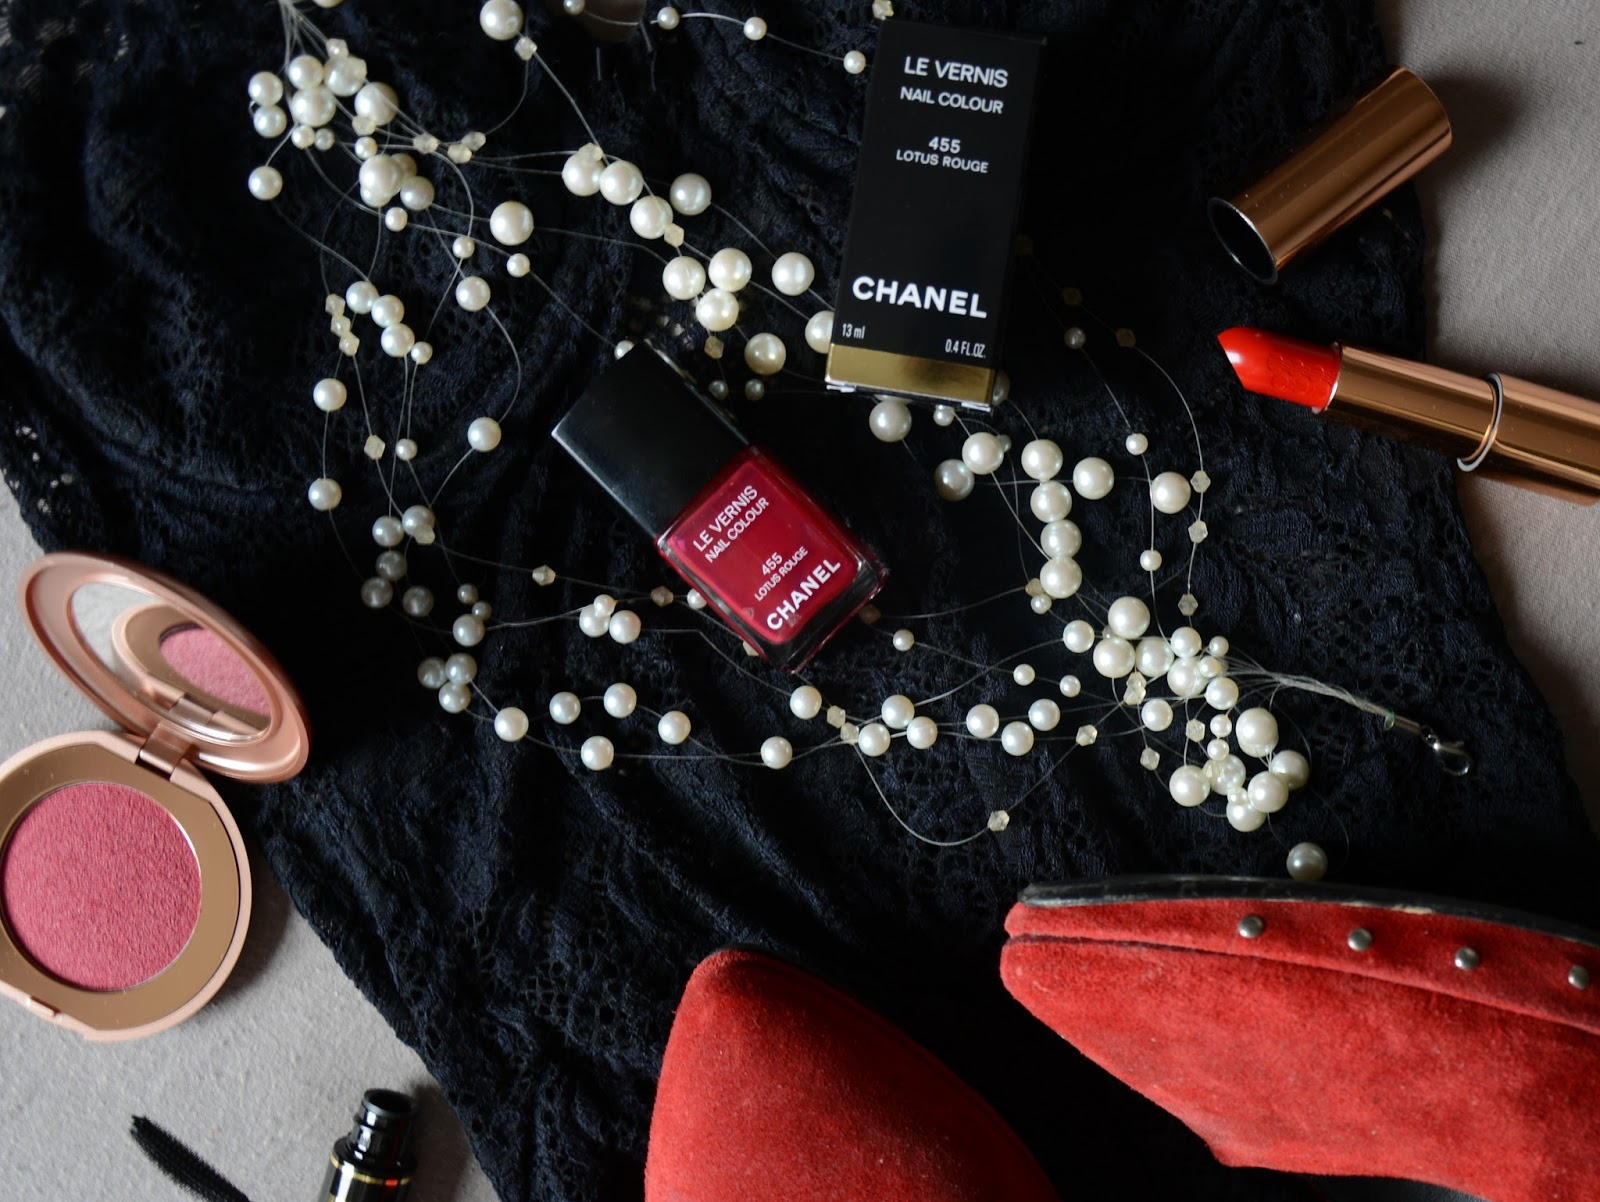 chanel-nail-polish-lotus-rouge